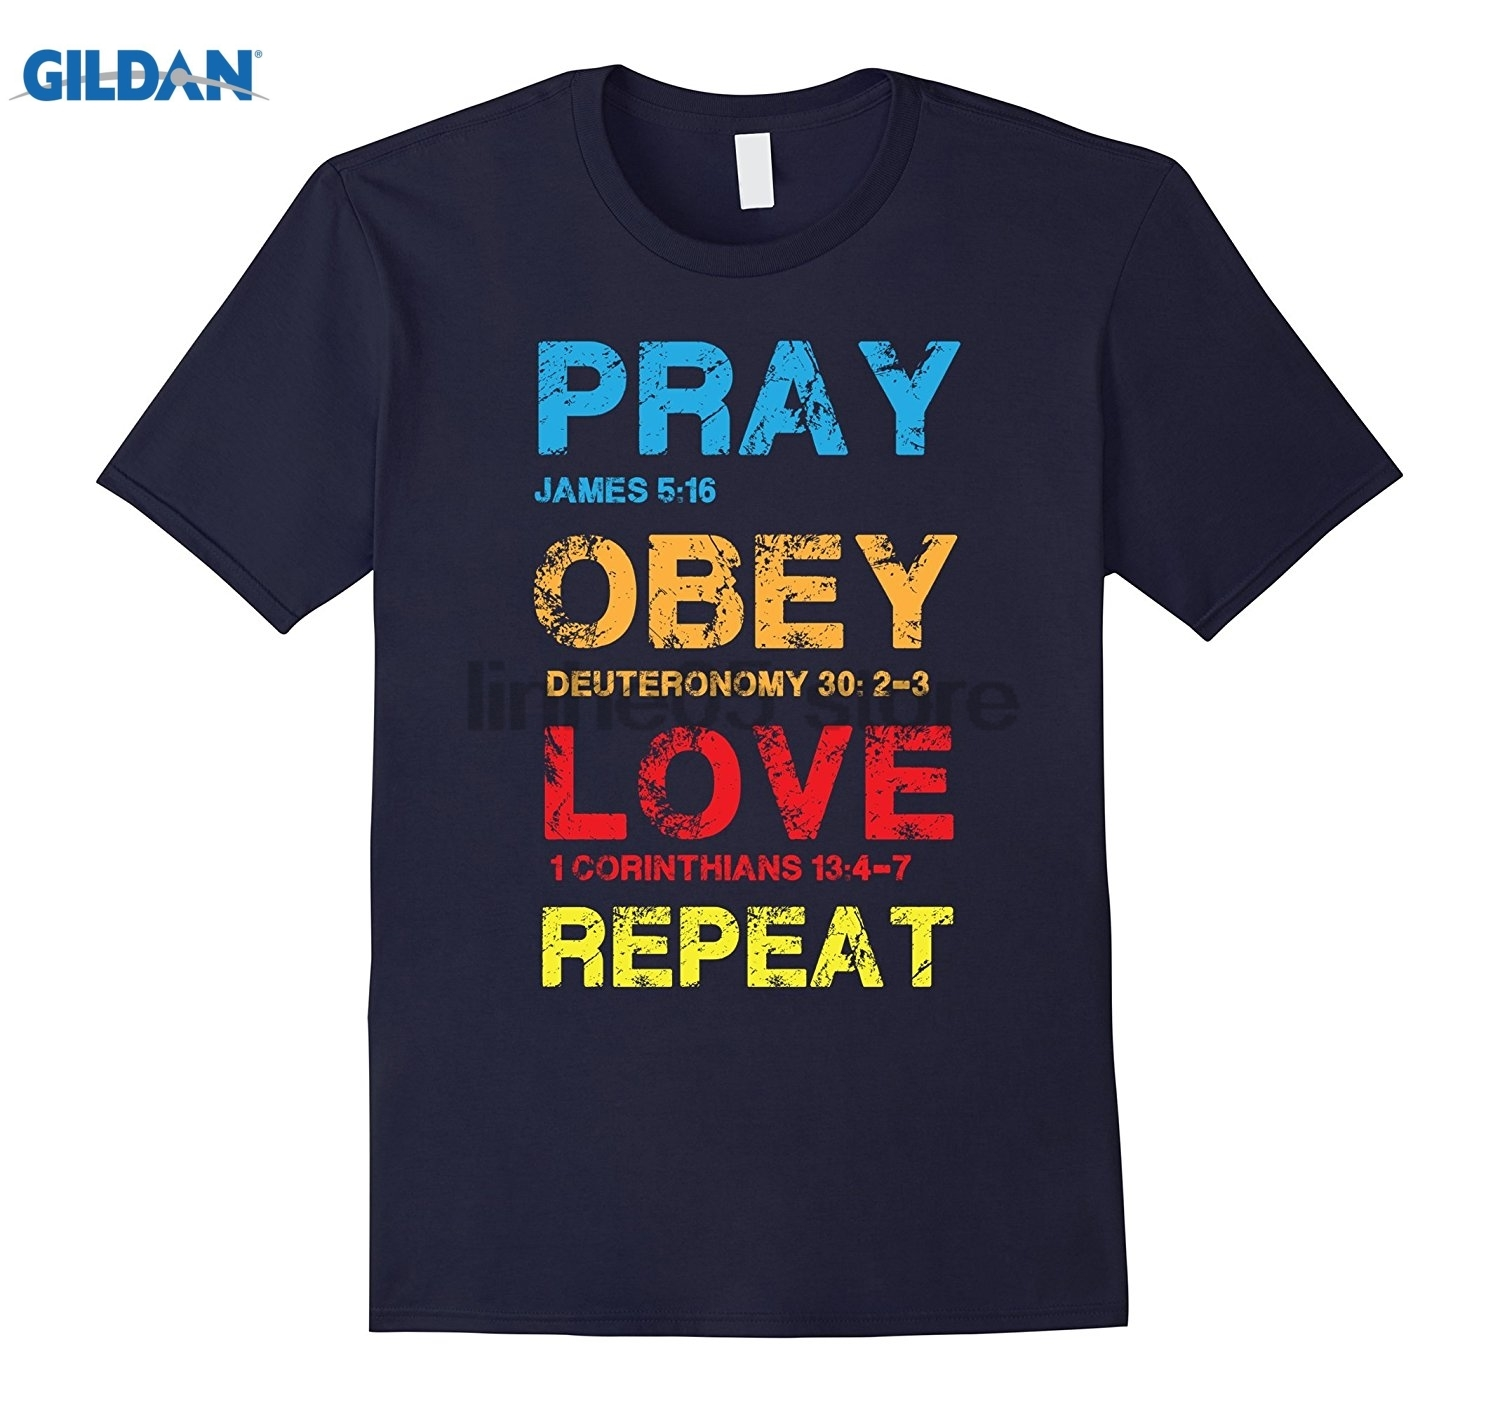 GILDAN Pray Love Repeat - Bible Verse - Christian Bible Shirt Womens T-shirt